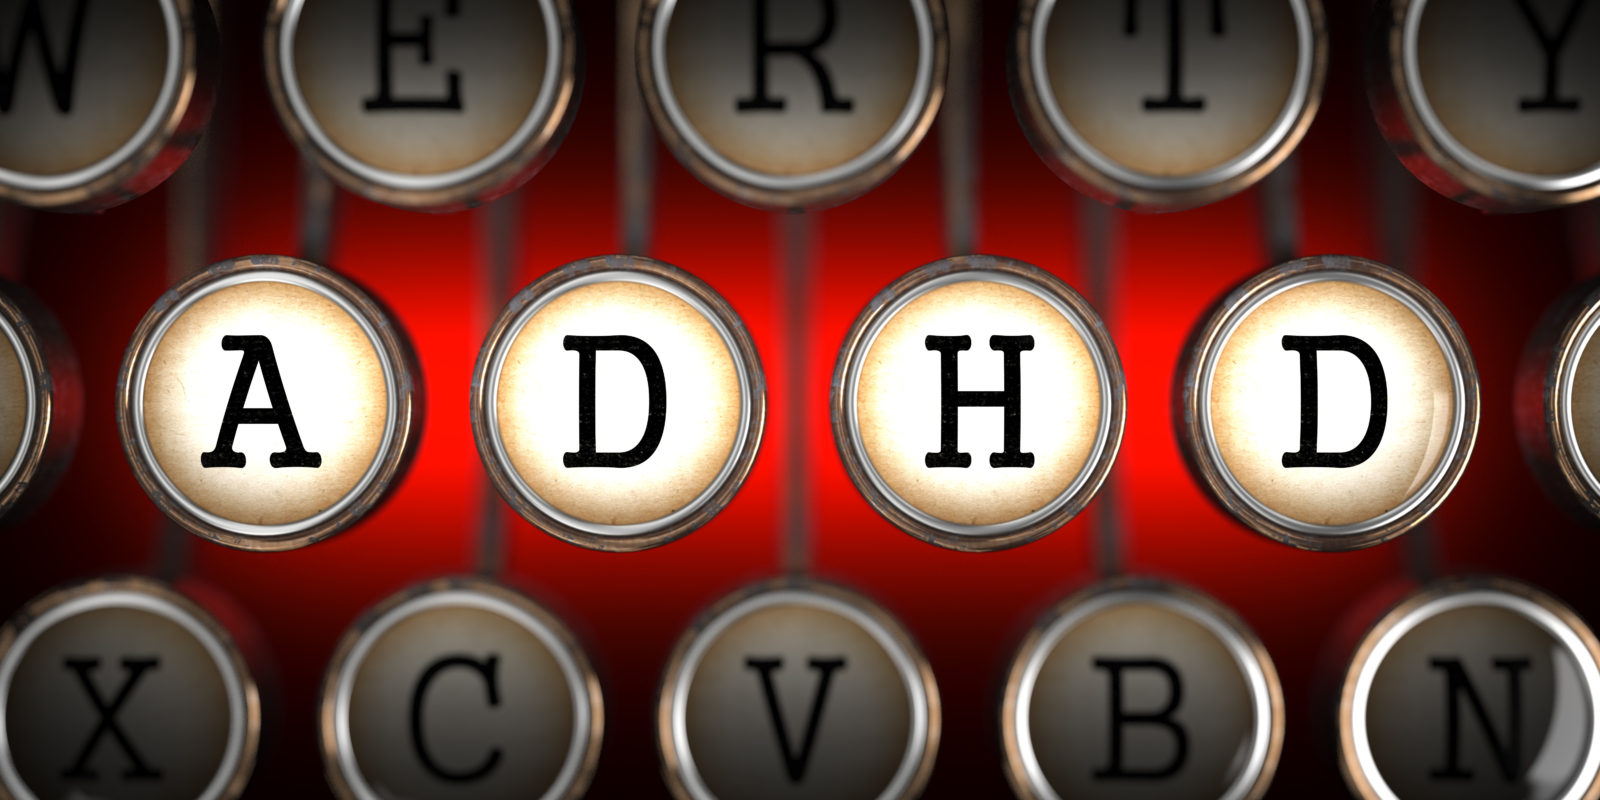 ADHD on Old Typewriter's Keys on Red Background.